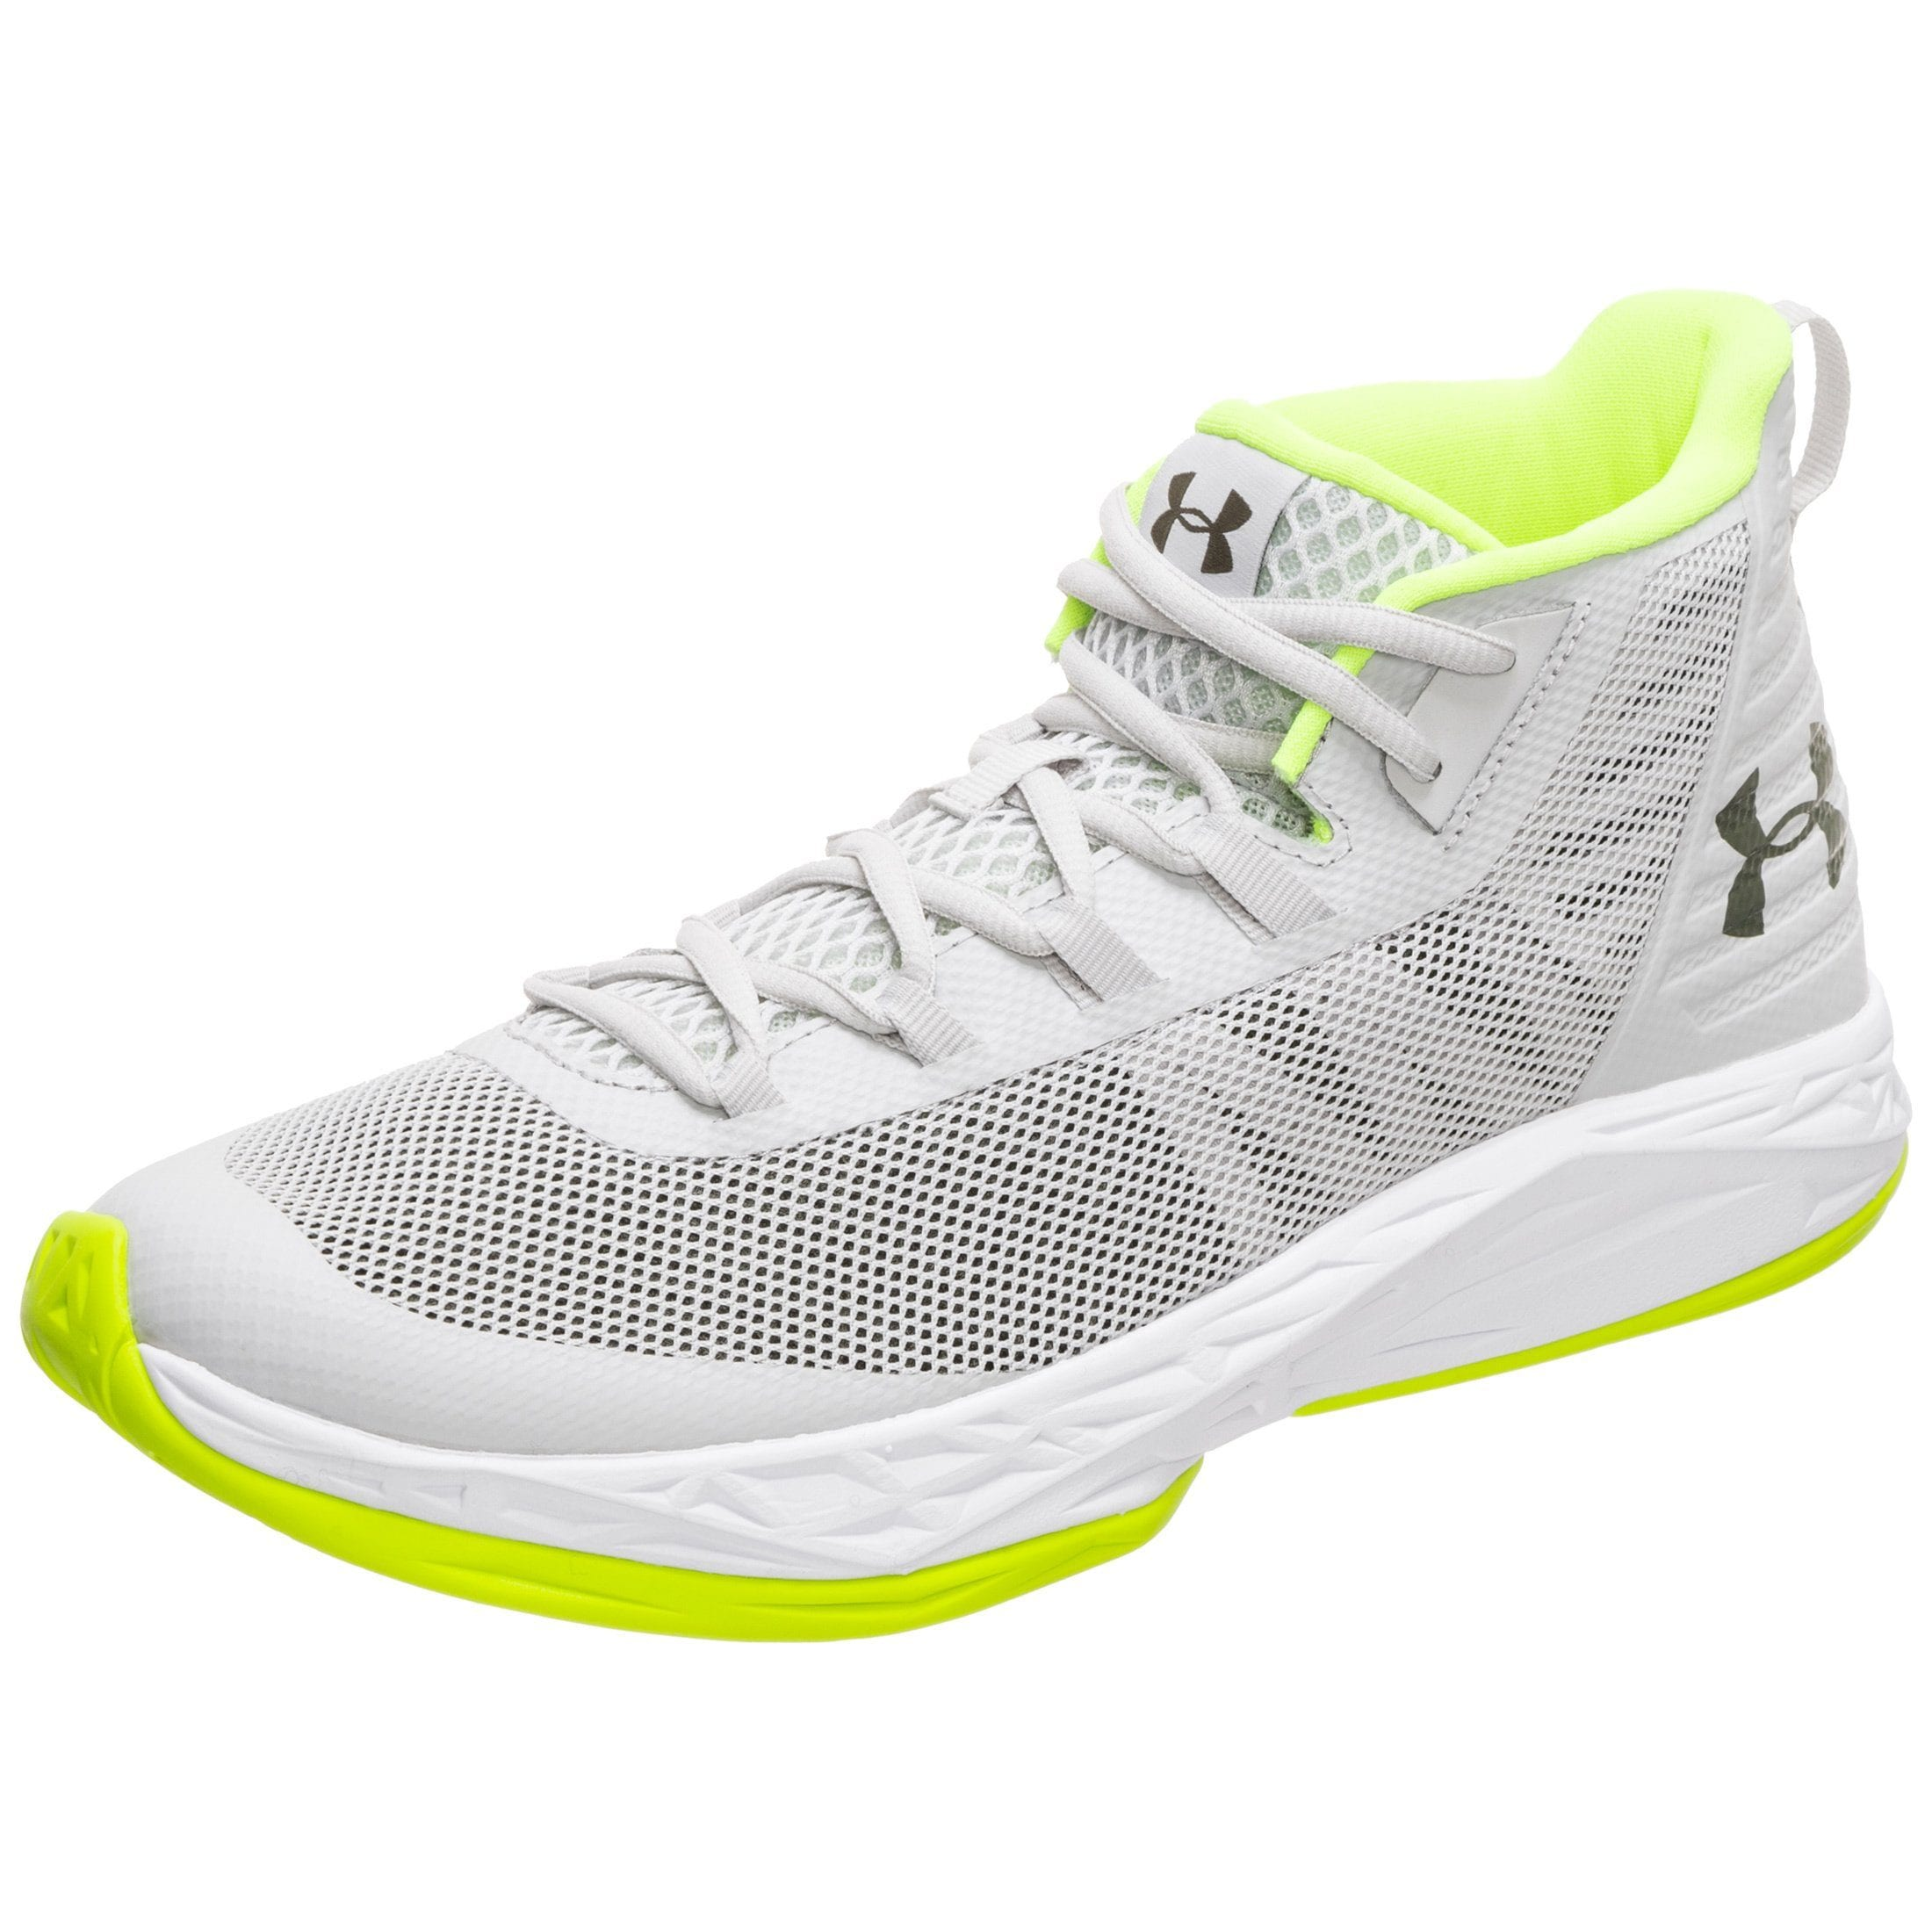 Image of Under Armour® Basketballschuh »Jet Mid«